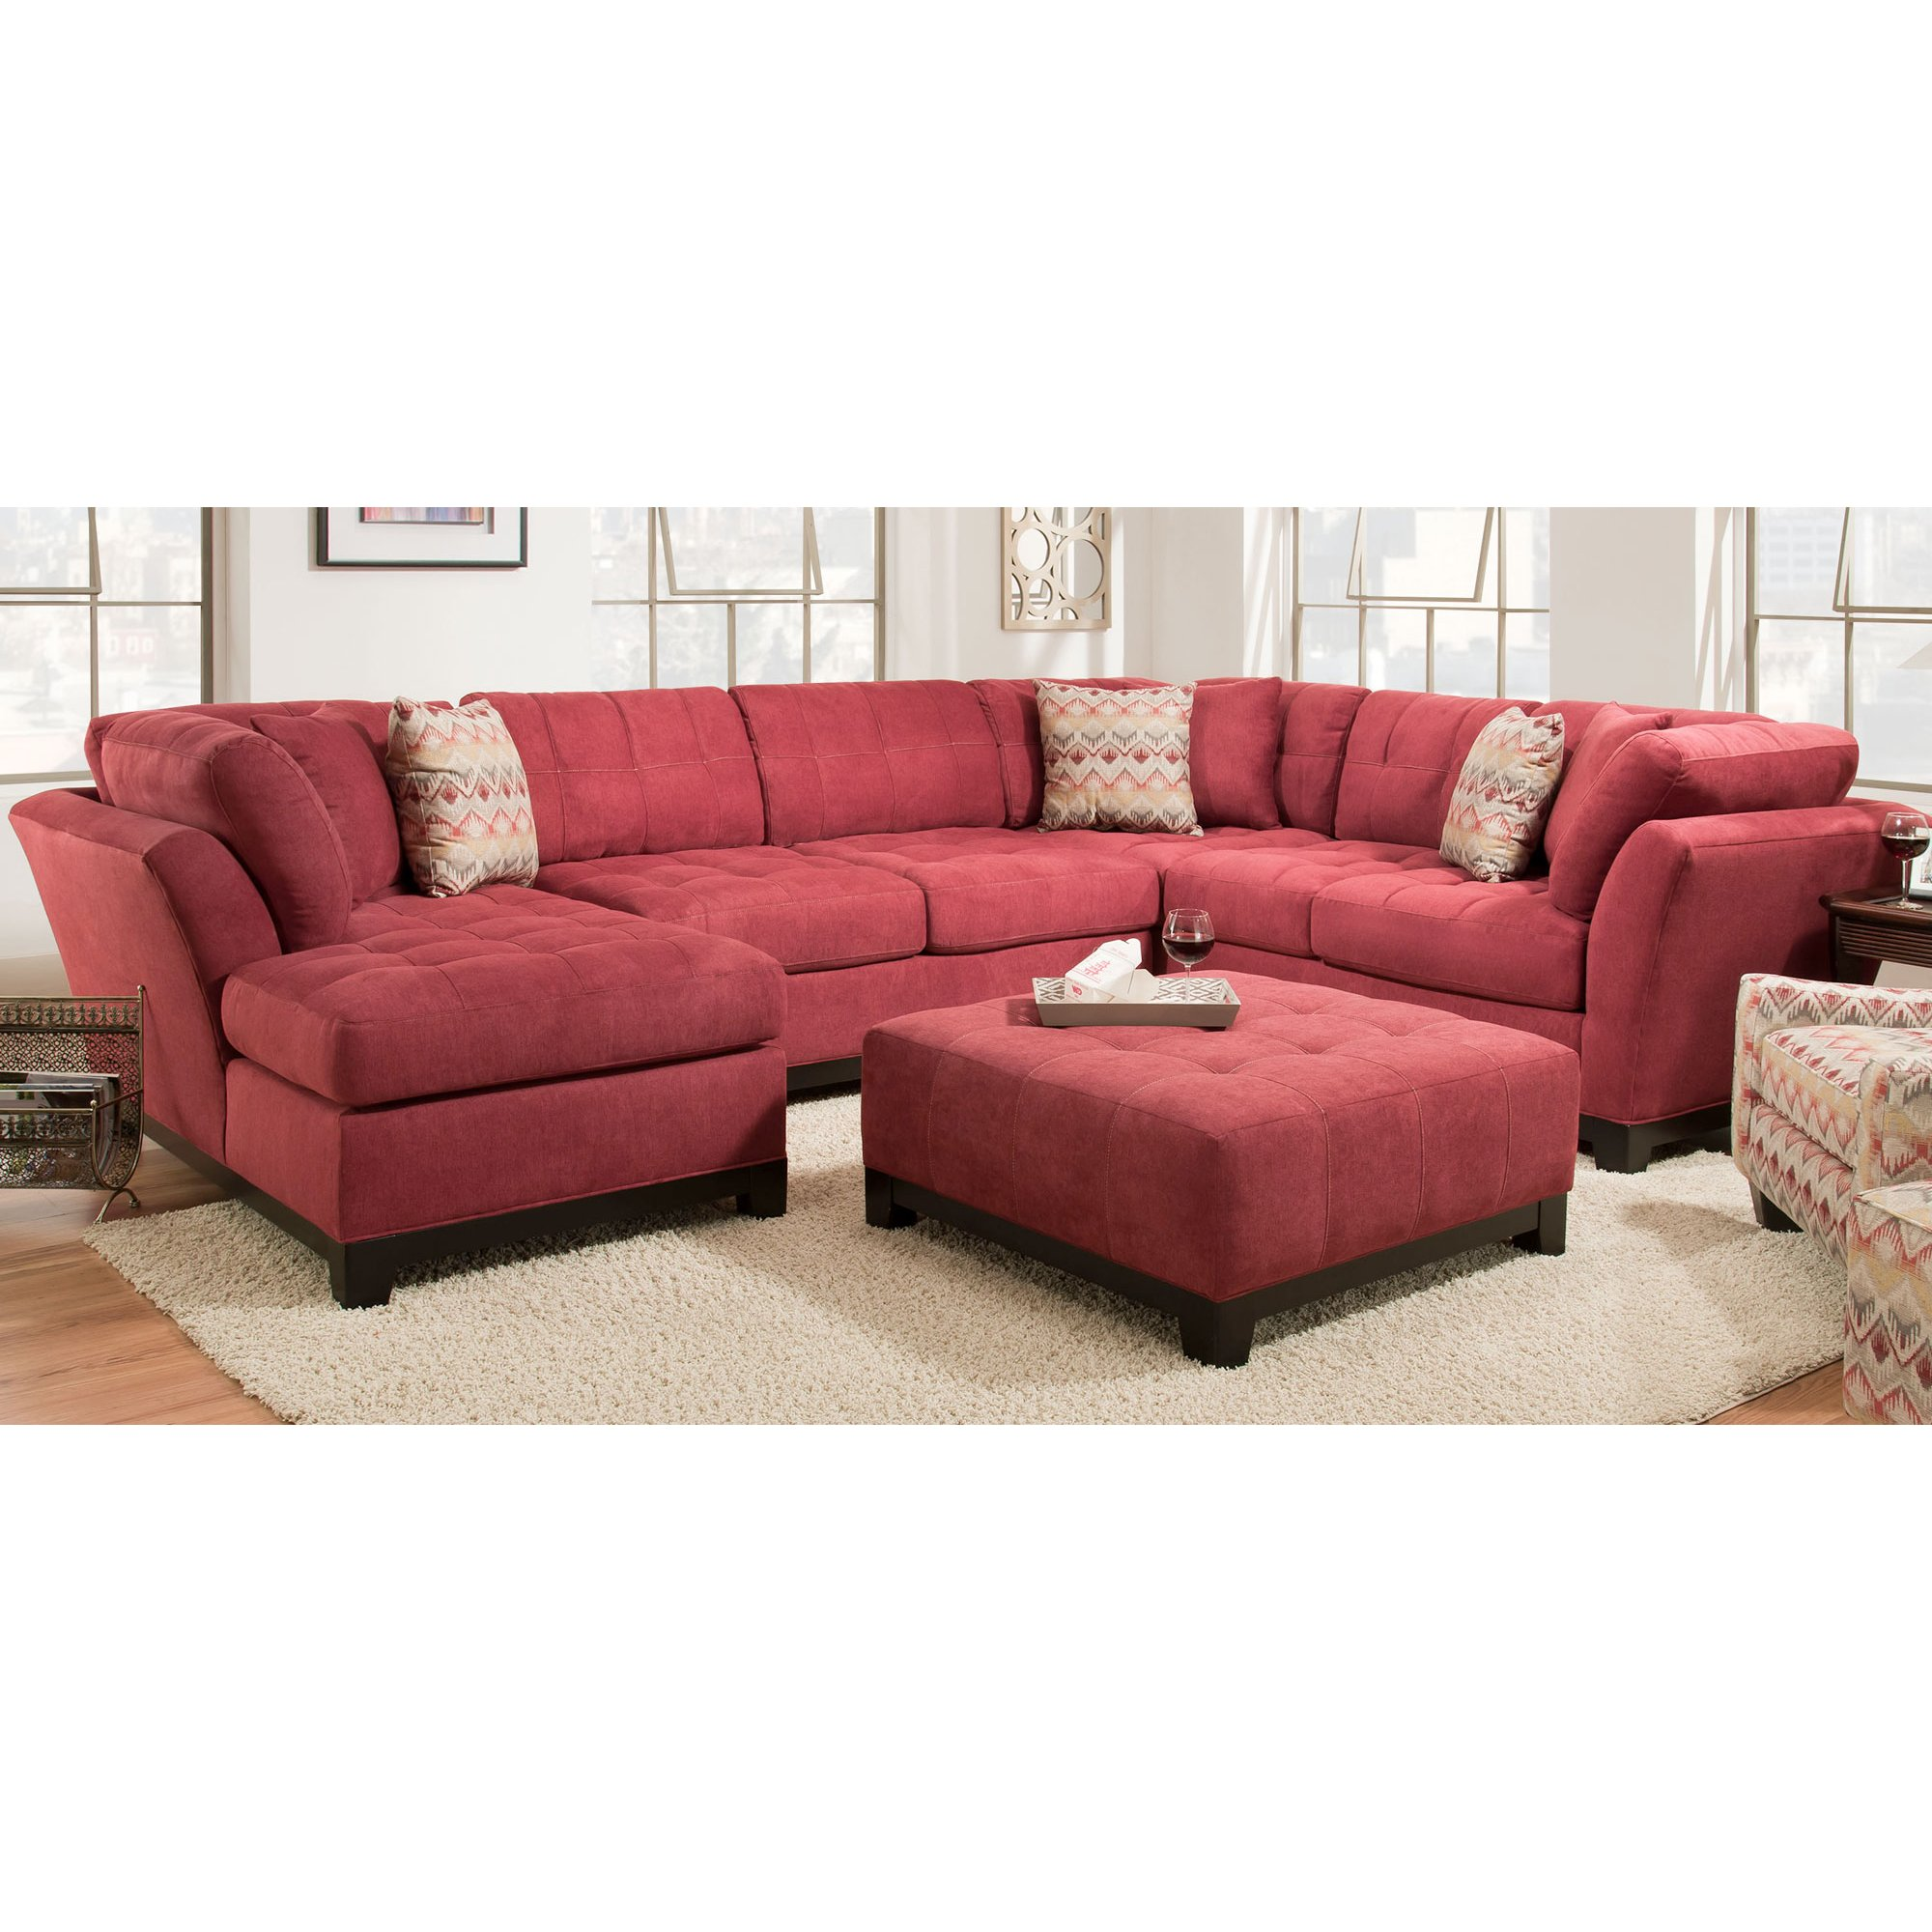 slipcovered blue sofa sofas fresh with of custom jean chaise red couch sectional denim